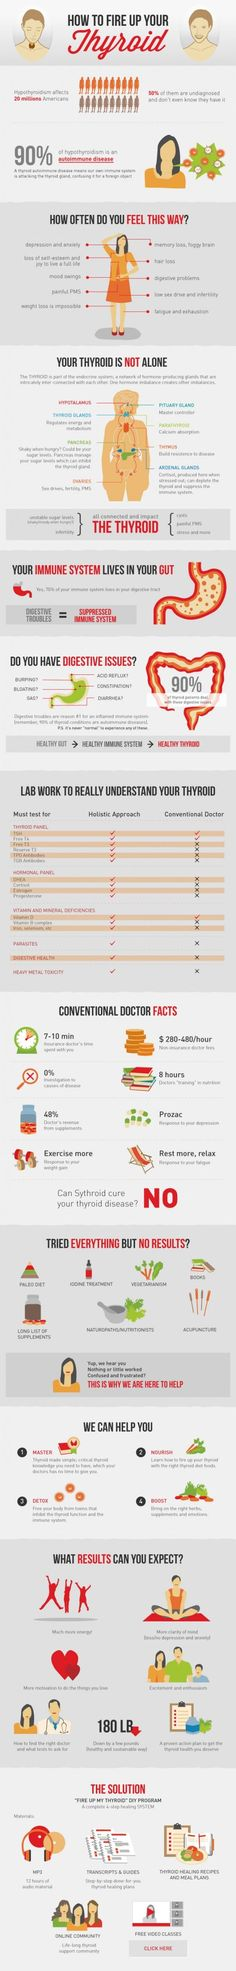 Thyroid Healing Program Infographic - link is to some kind of affiiate program, but this has some good basic info such as helpful tests for thyroid function.